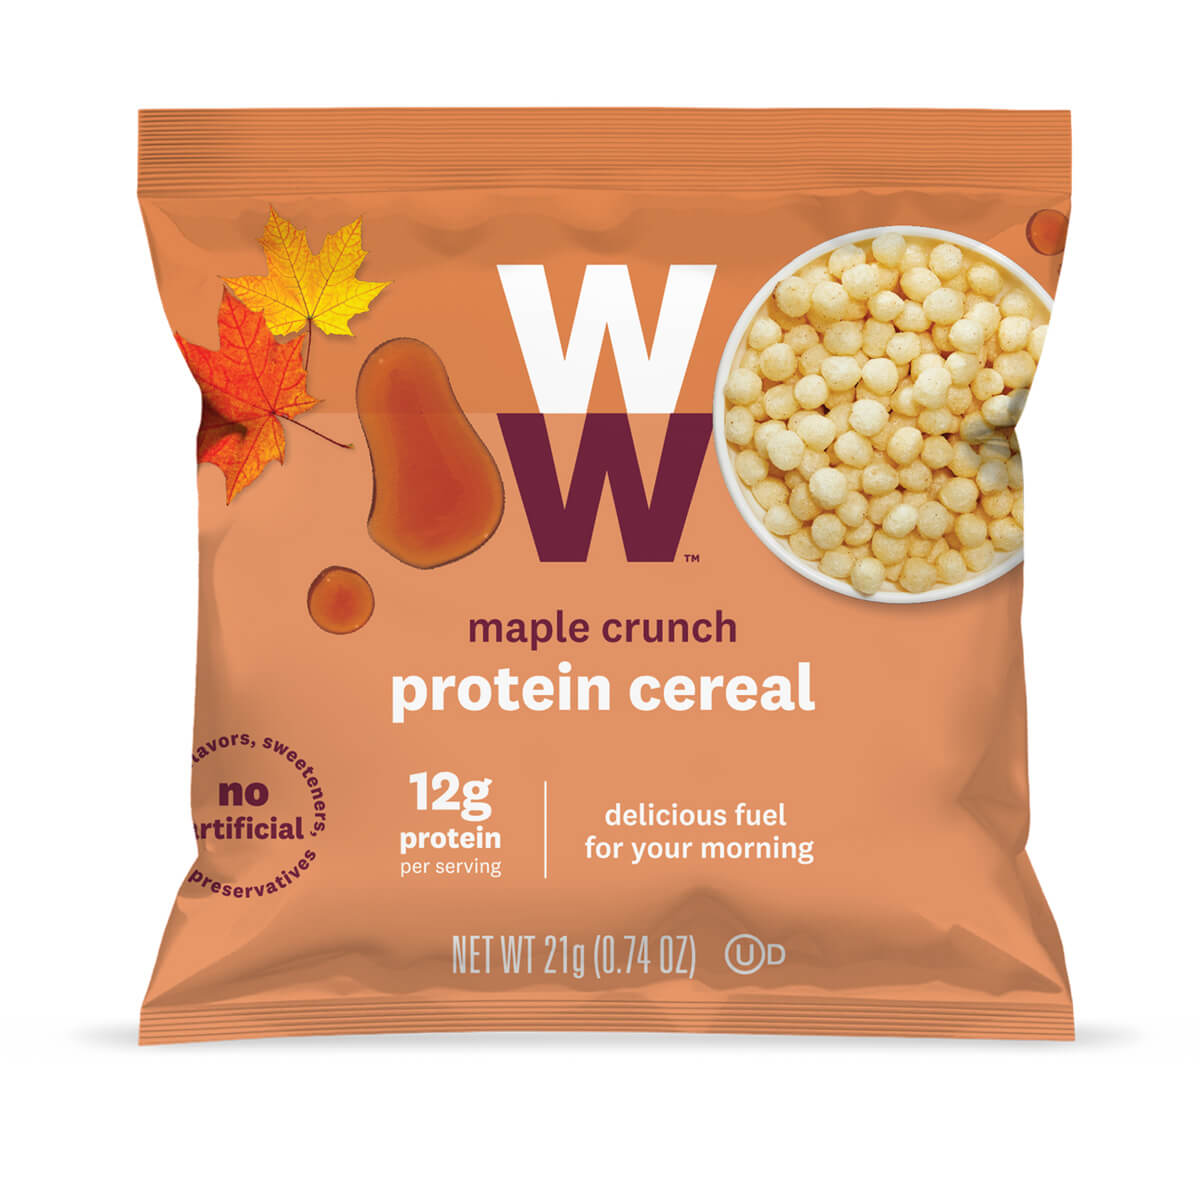 Maple Crunch Protein Cereal - bag